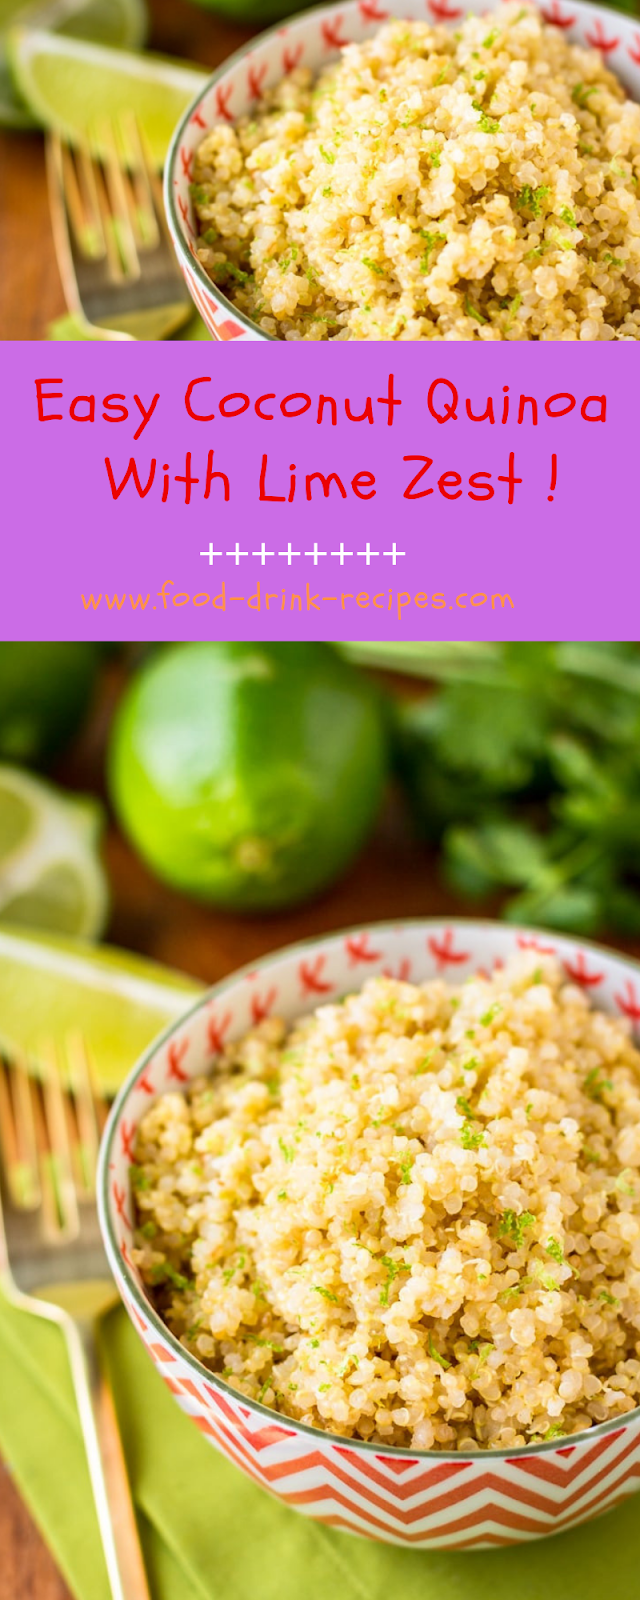 Easy Coconut Quinoa With Lime Zest